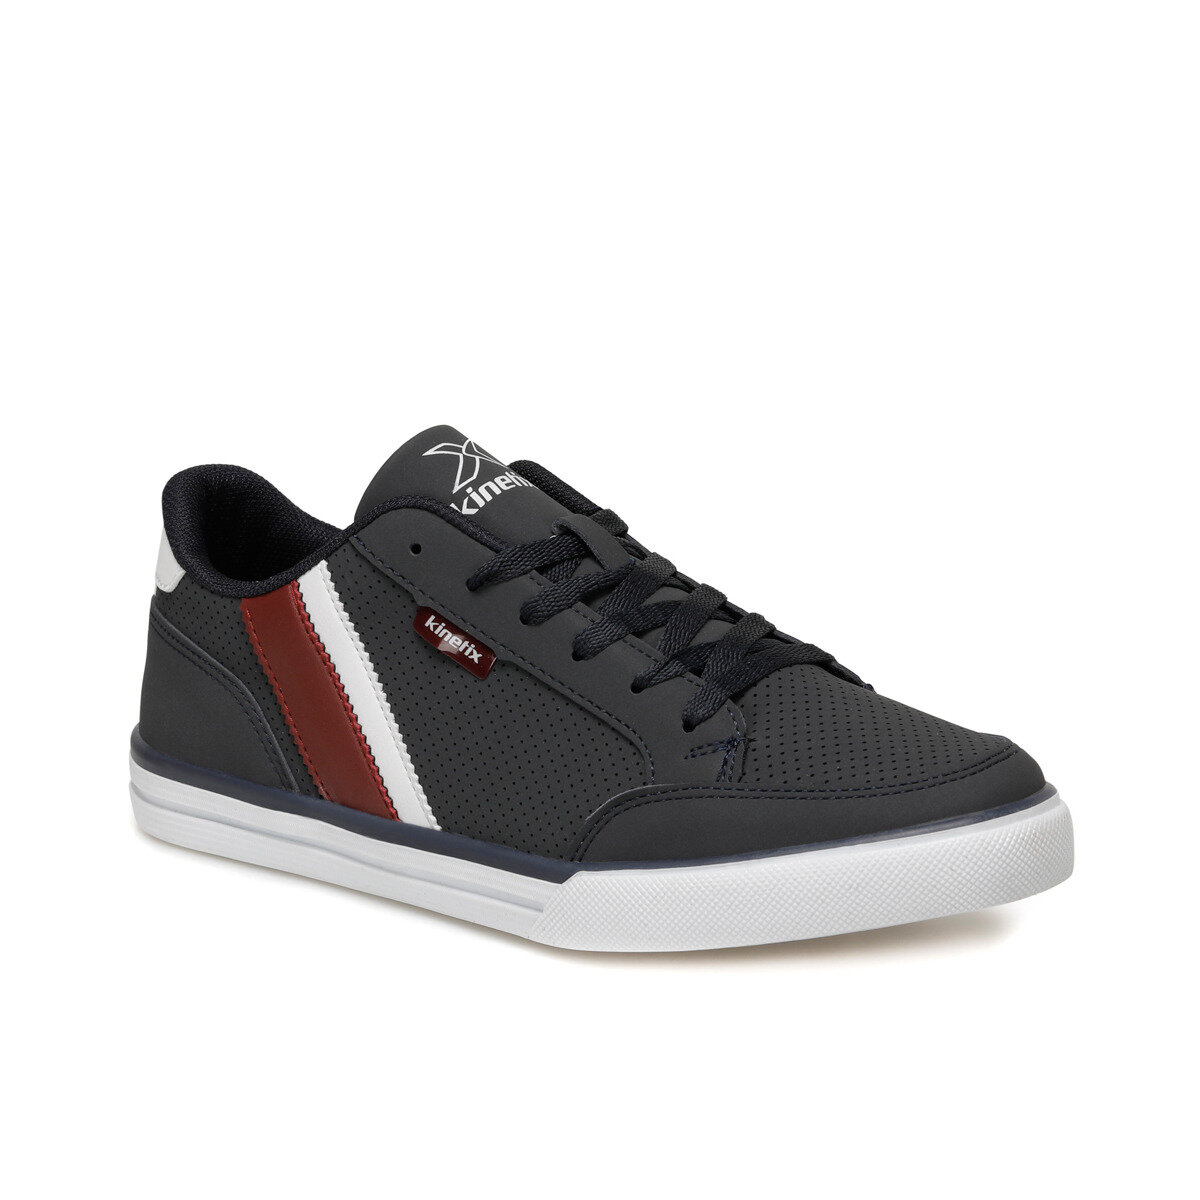 FLO ON Navy Blue Men 'S Sneaker Shoes KINETIX